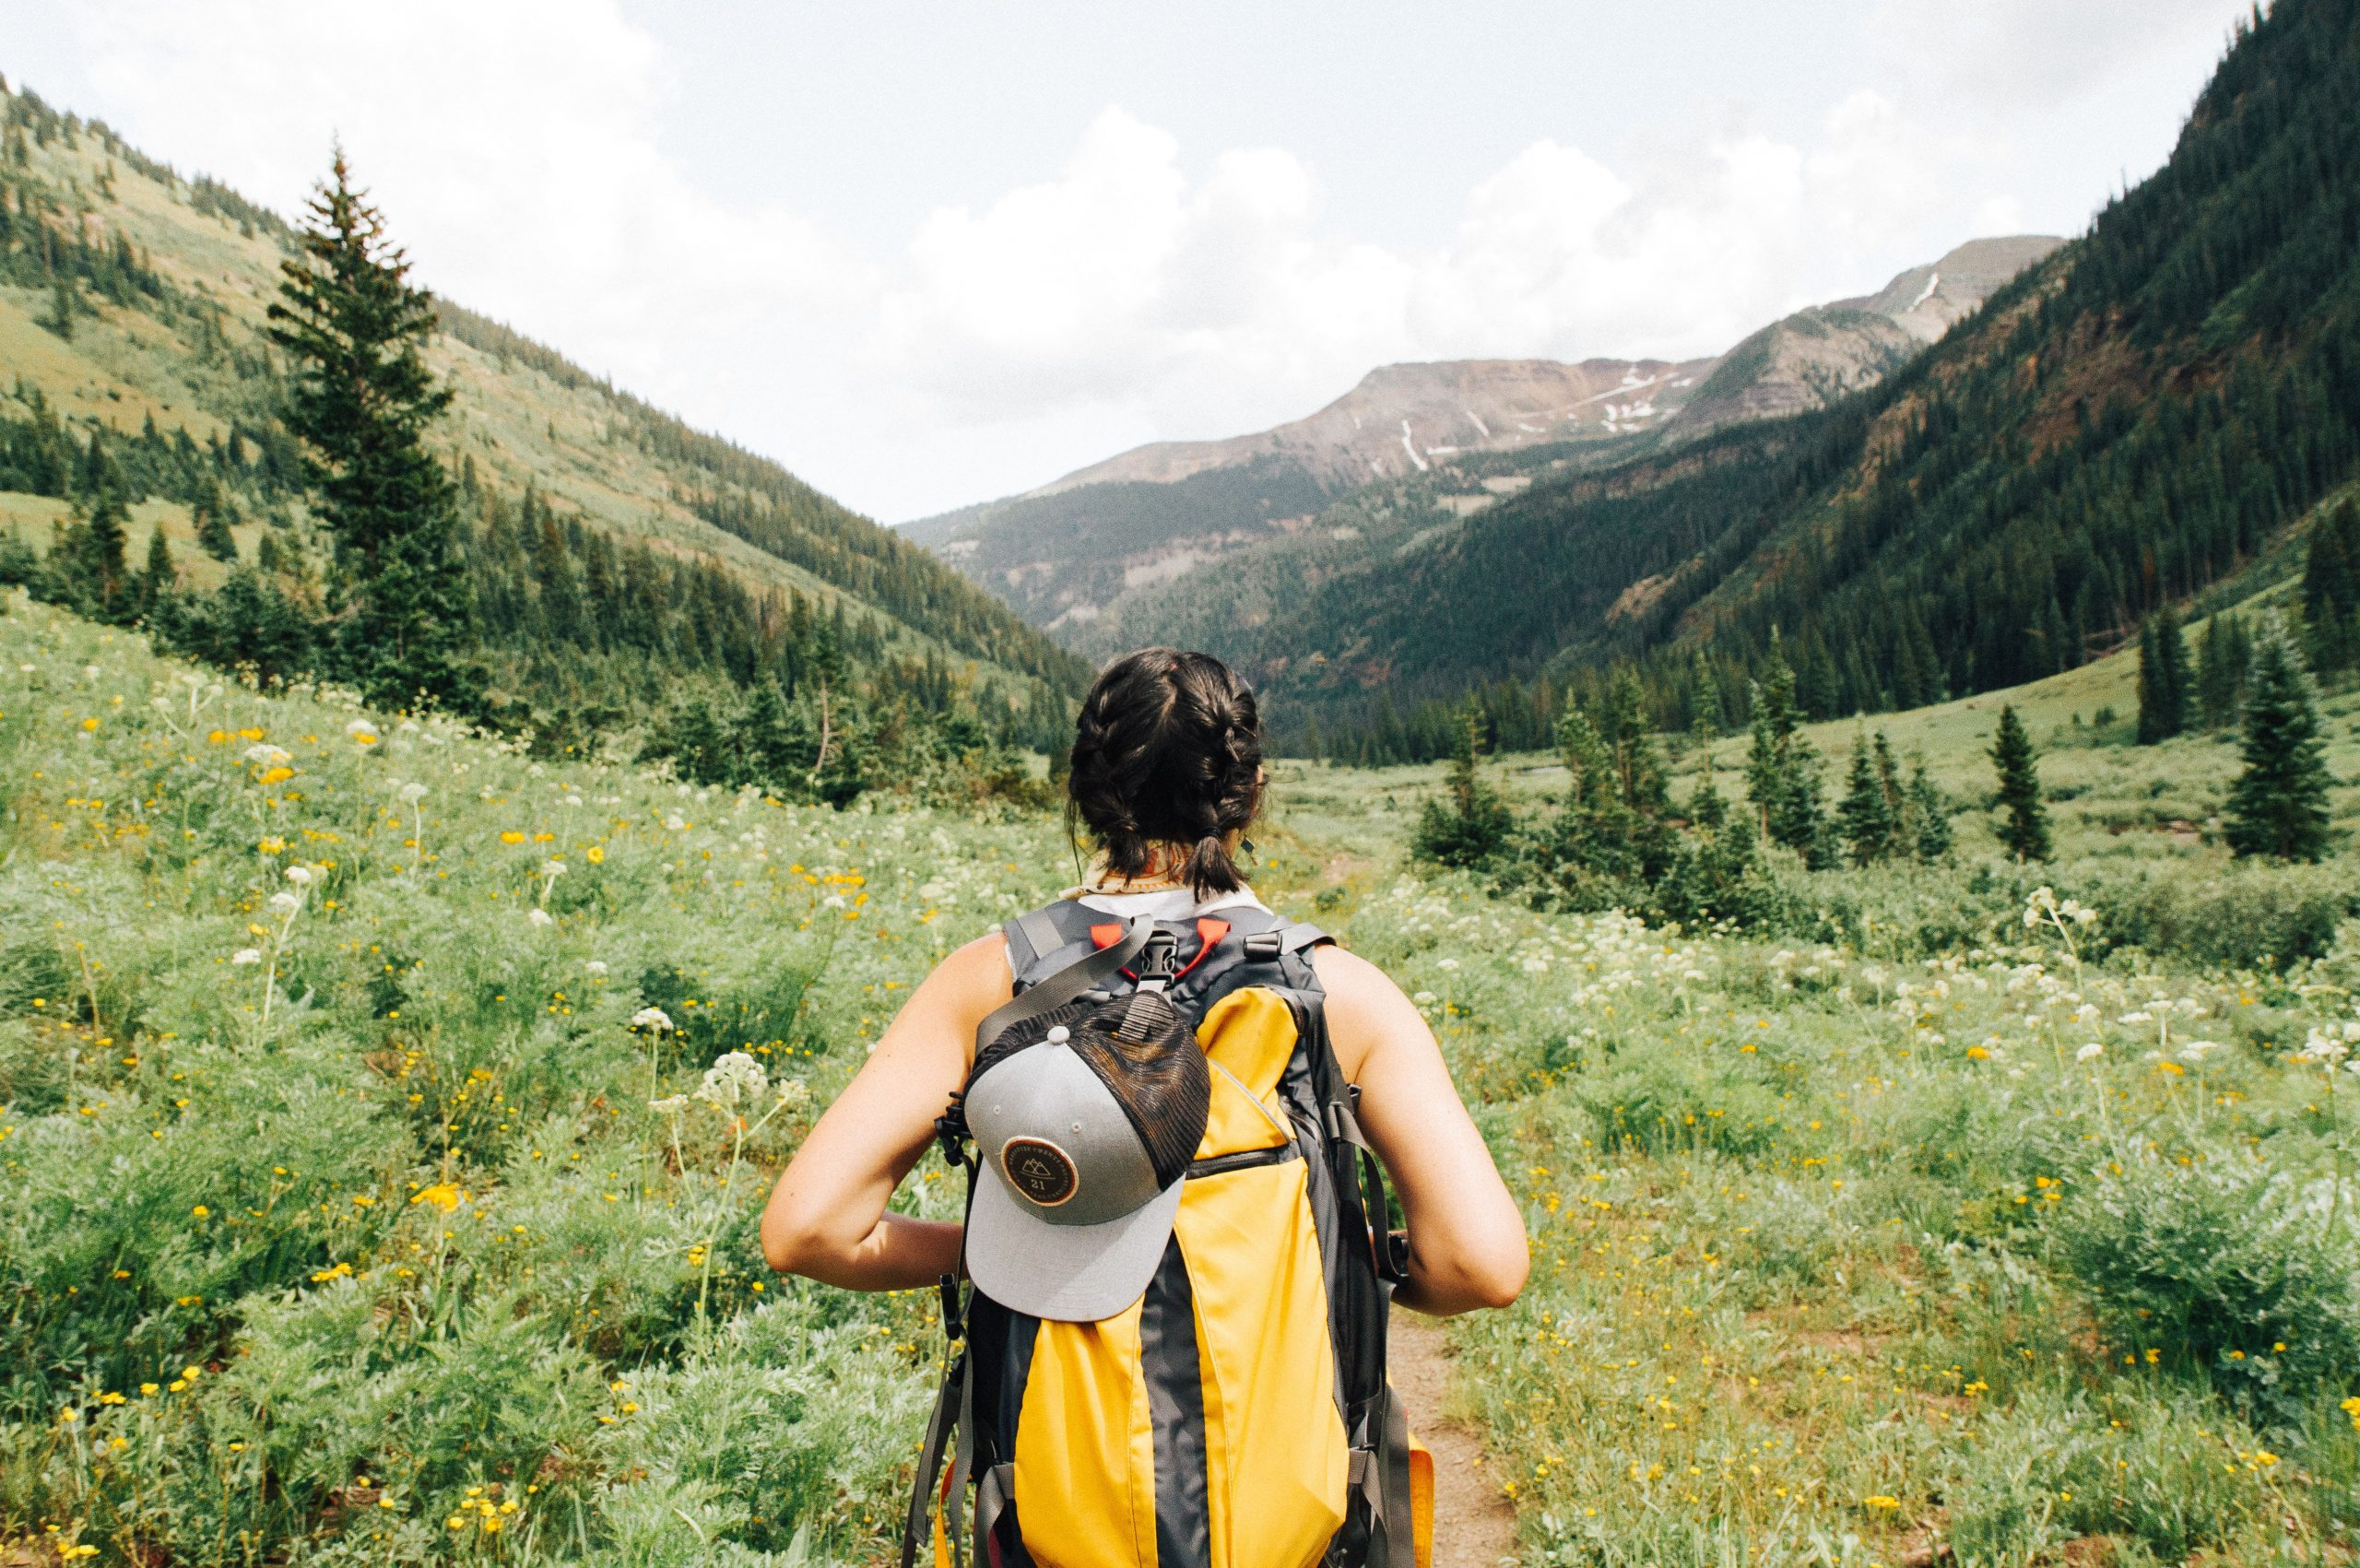 A person with a yellow backpack going on an adventure in lush green mountains